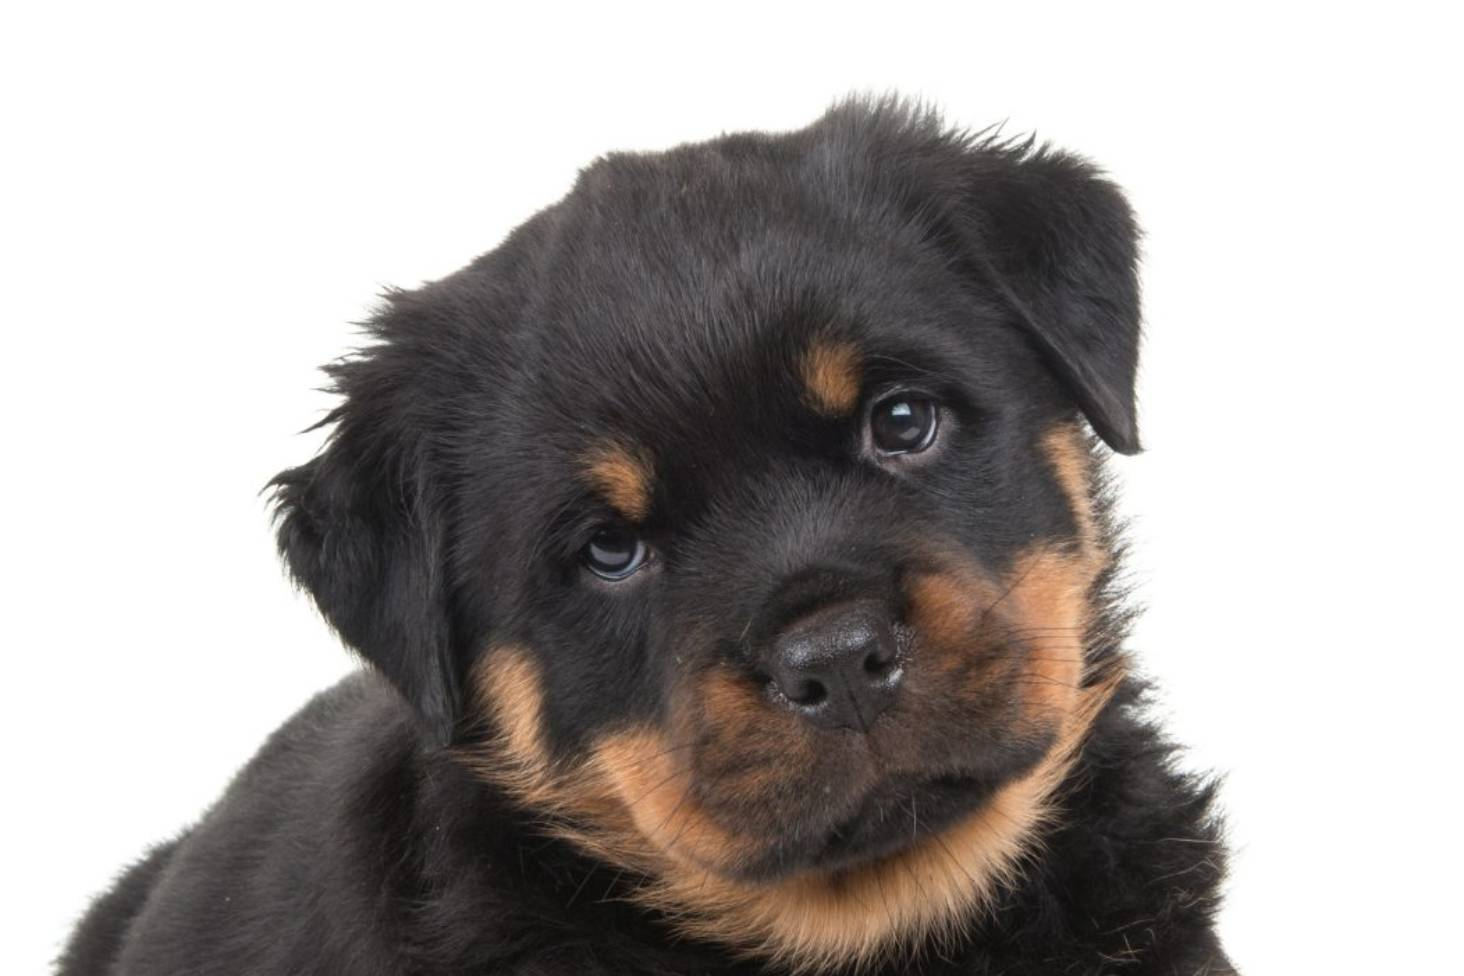 Woman fined $500 for docking Rottweiler puppies with bands   Stuff co nz